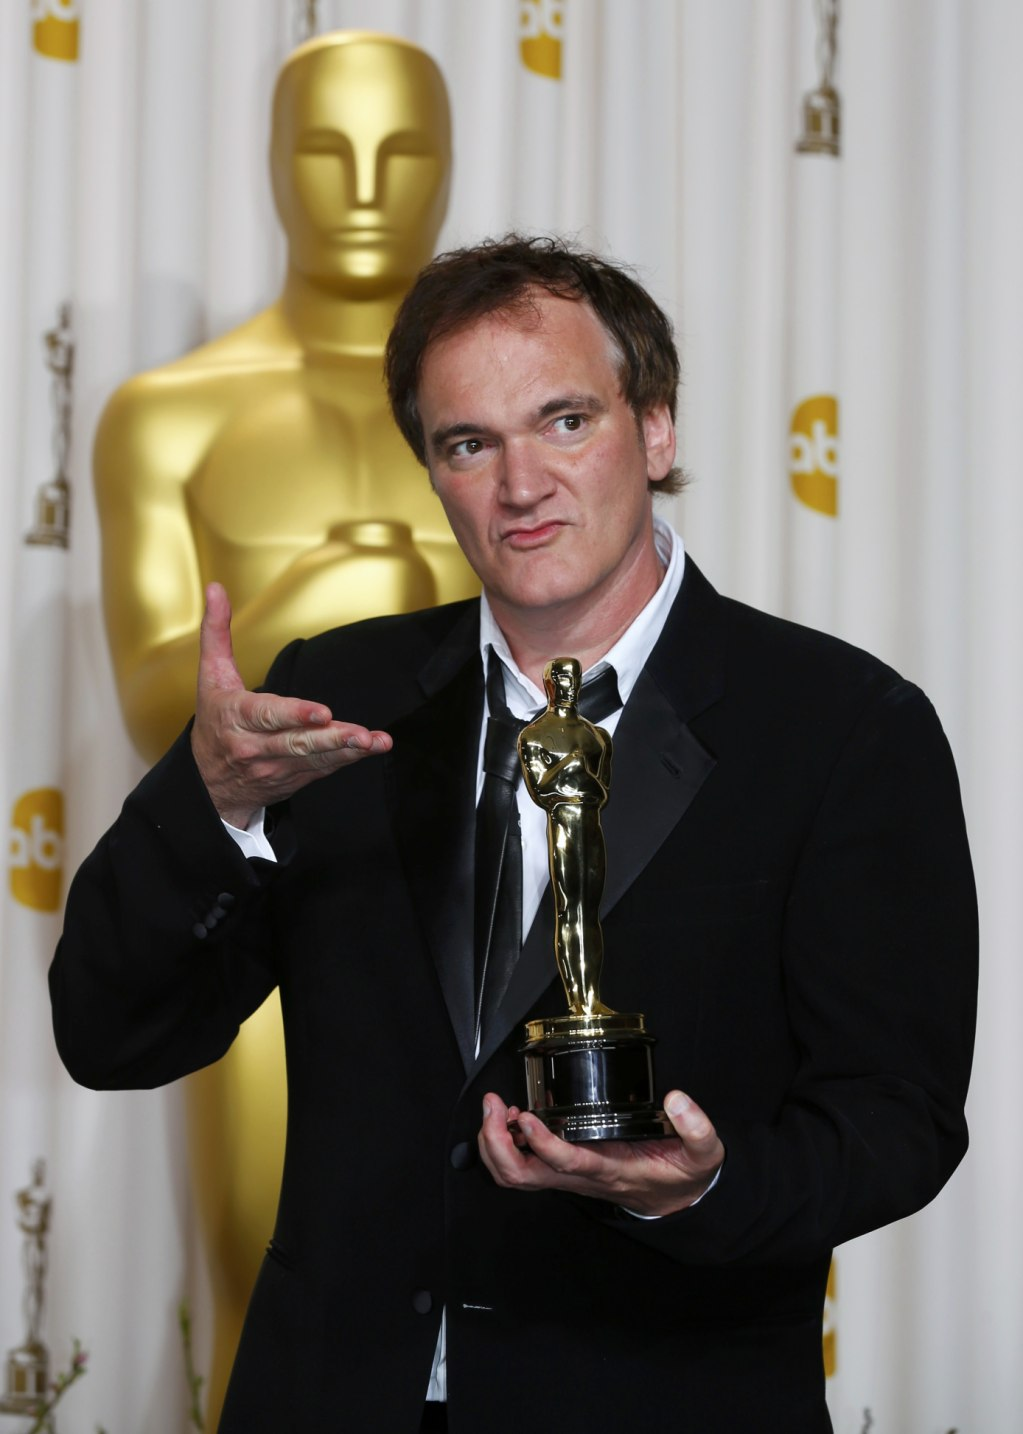 Quentin Tarantino photo #471274